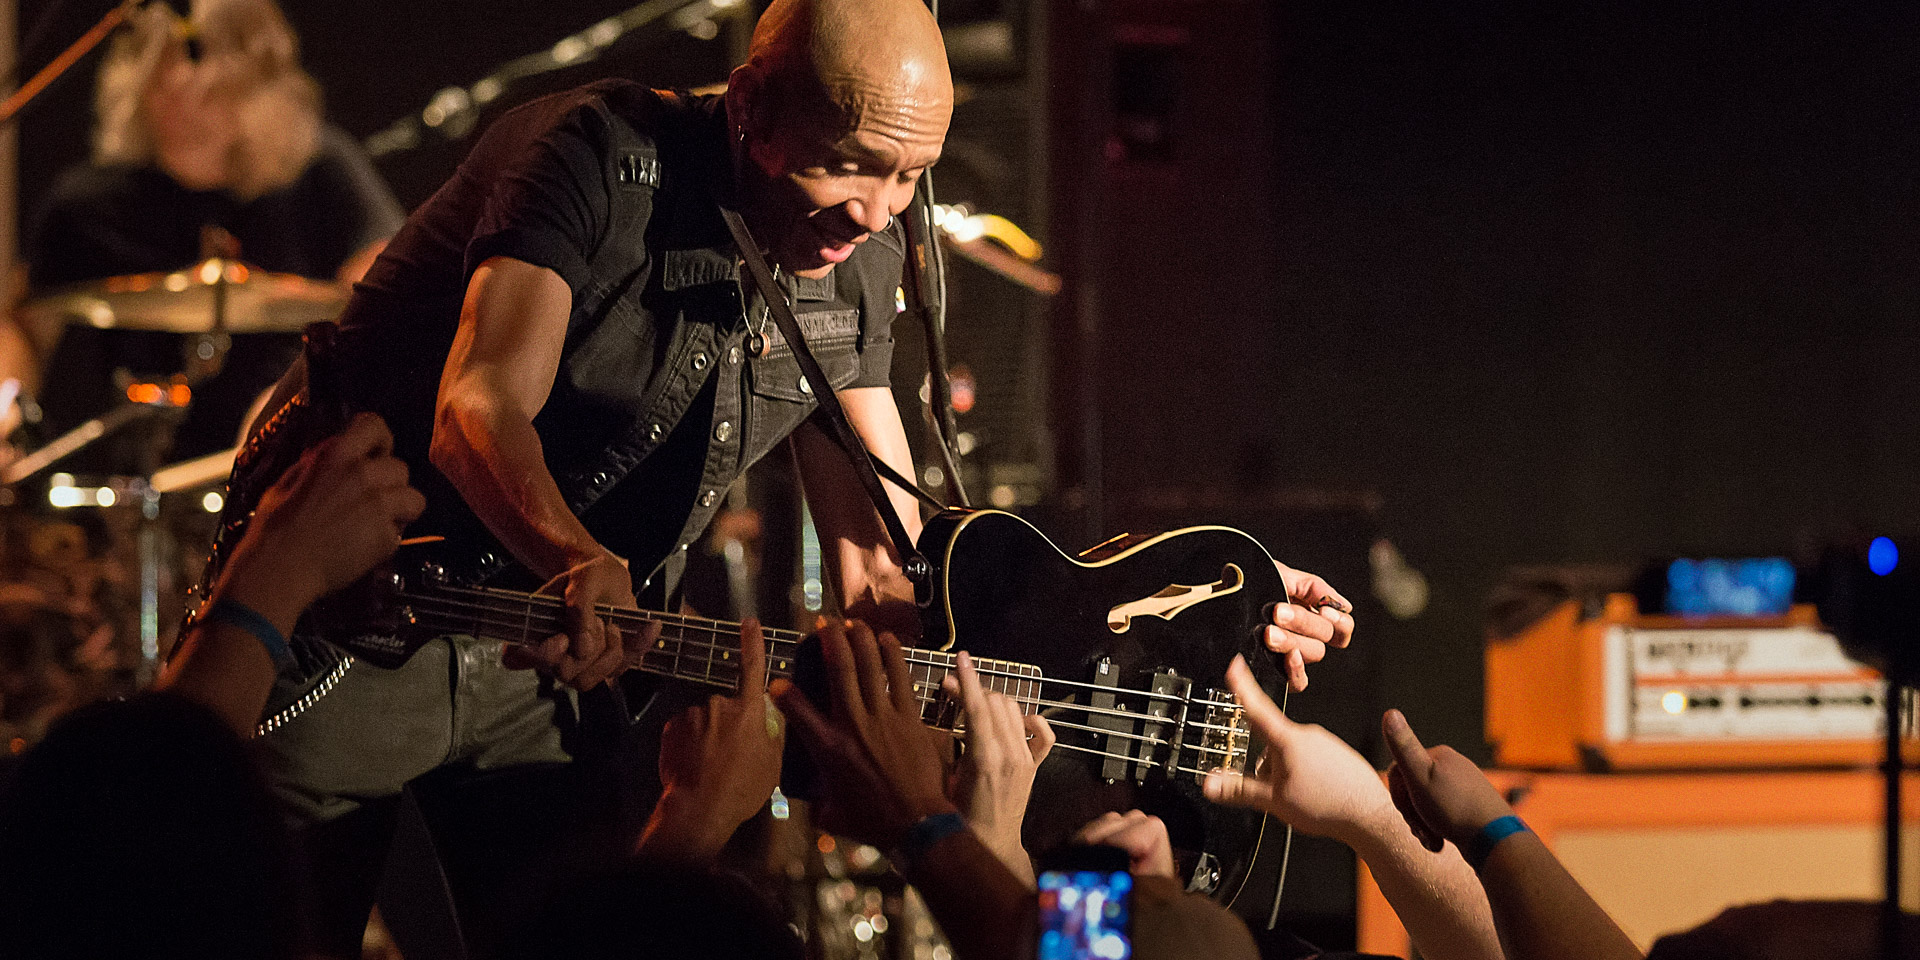 King's X: Crowd helps bassist Dug Pinnick play bass